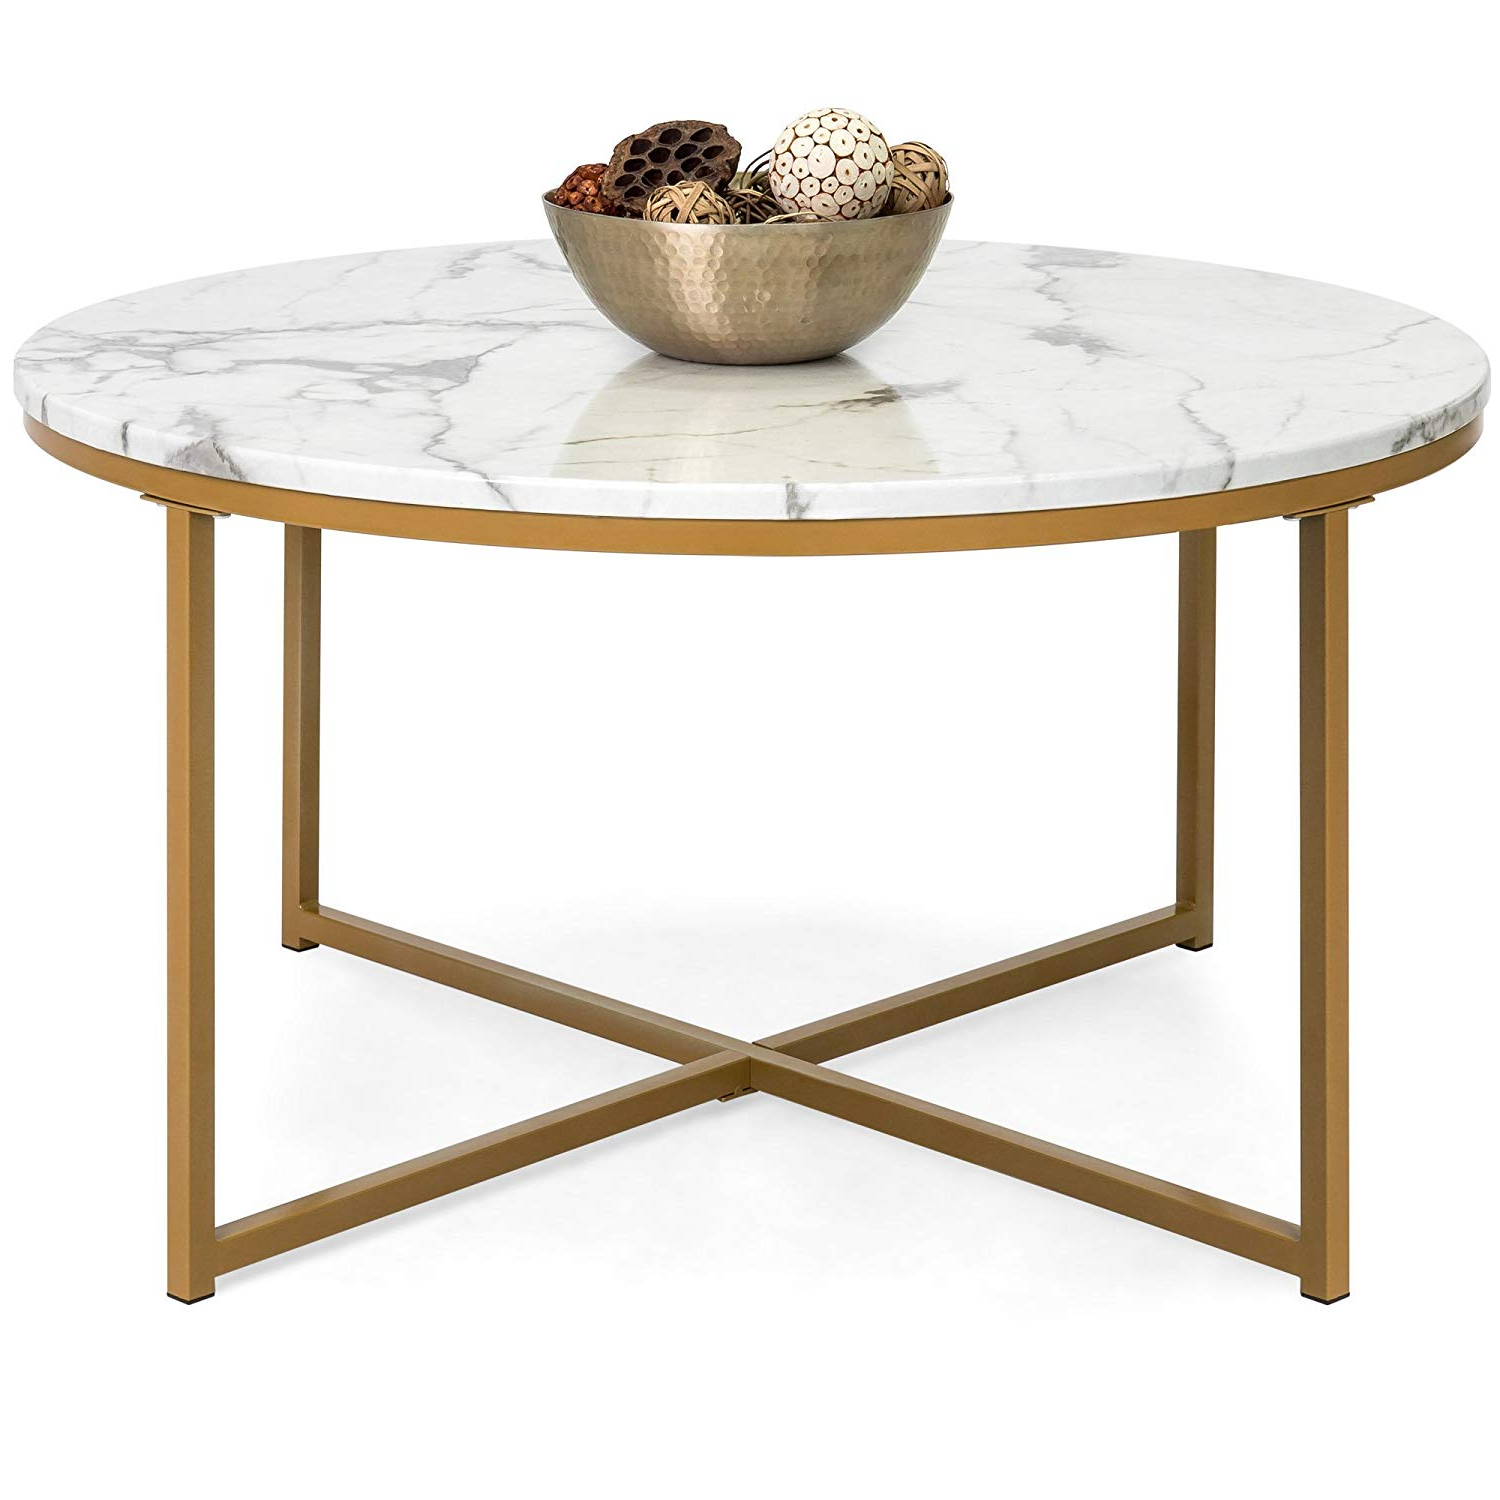 Faux Marble Finish Metal Contemporary Dining Tables Inside Best And Newest Modern Coffee Table With Gold Frame And Faux Marble Top (View 6 of 30)